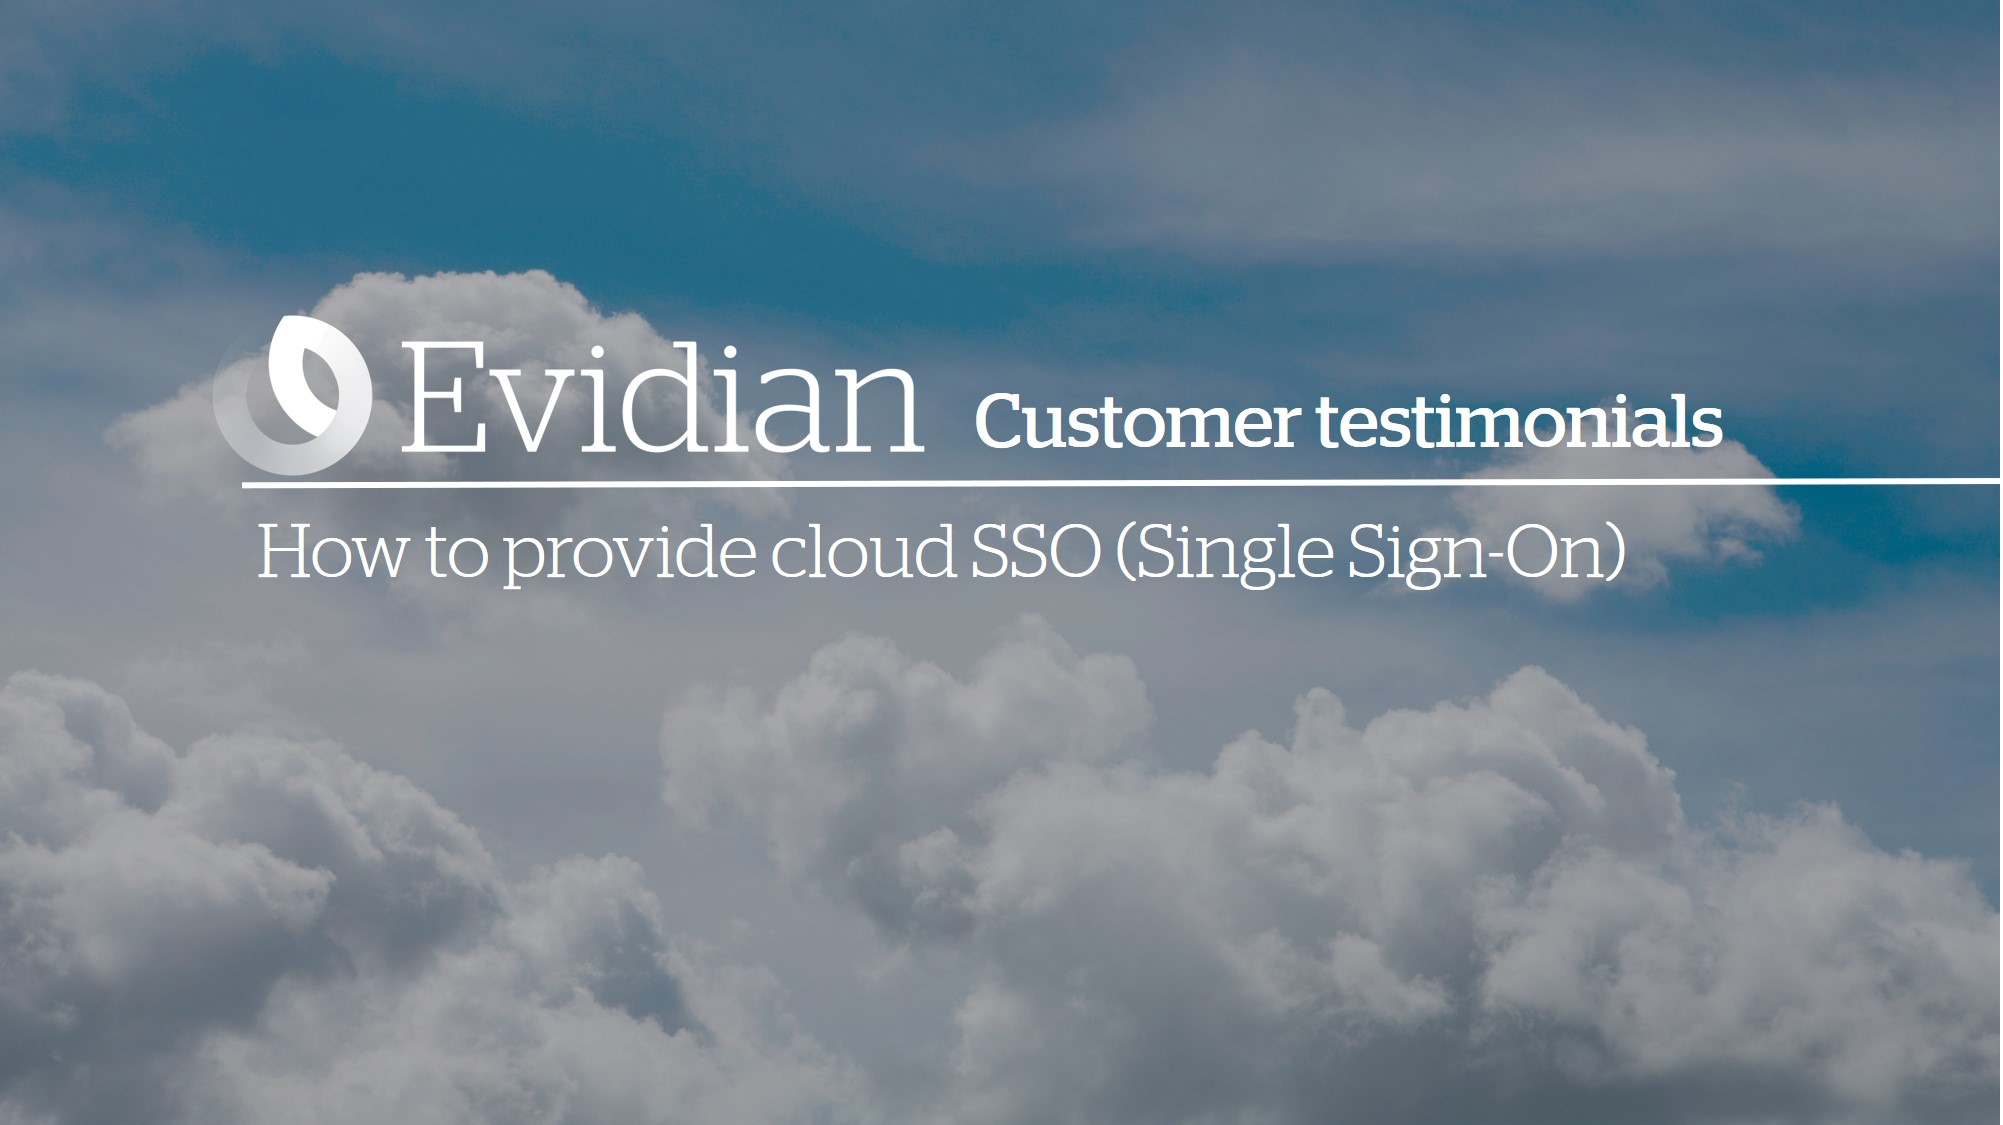 How to provide cloud SSO